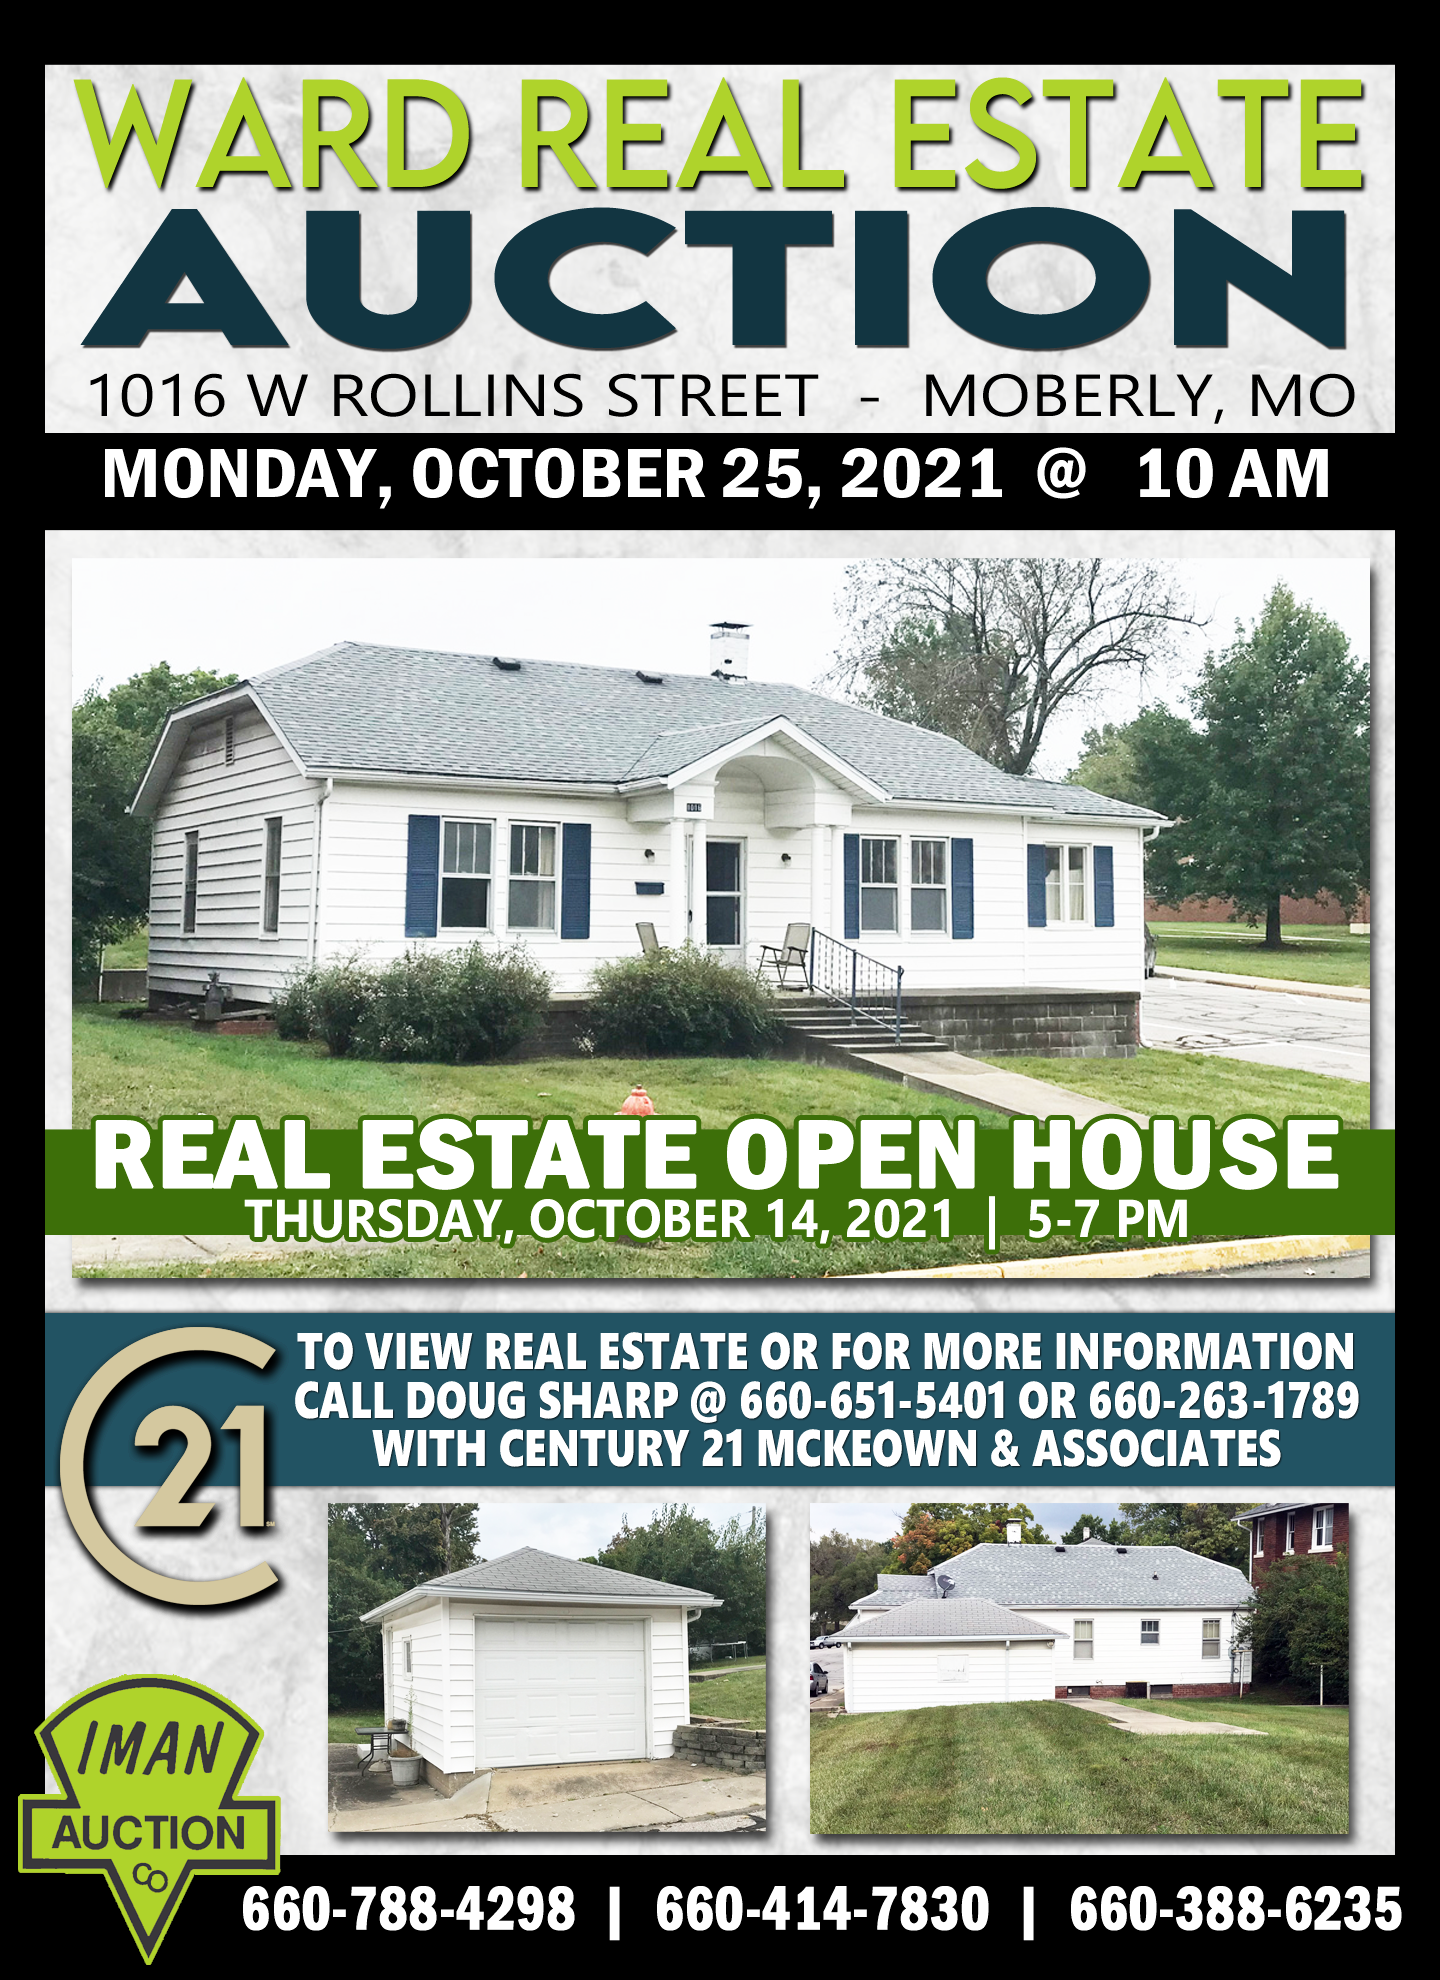 WARD REAL ESTATE AUCTION